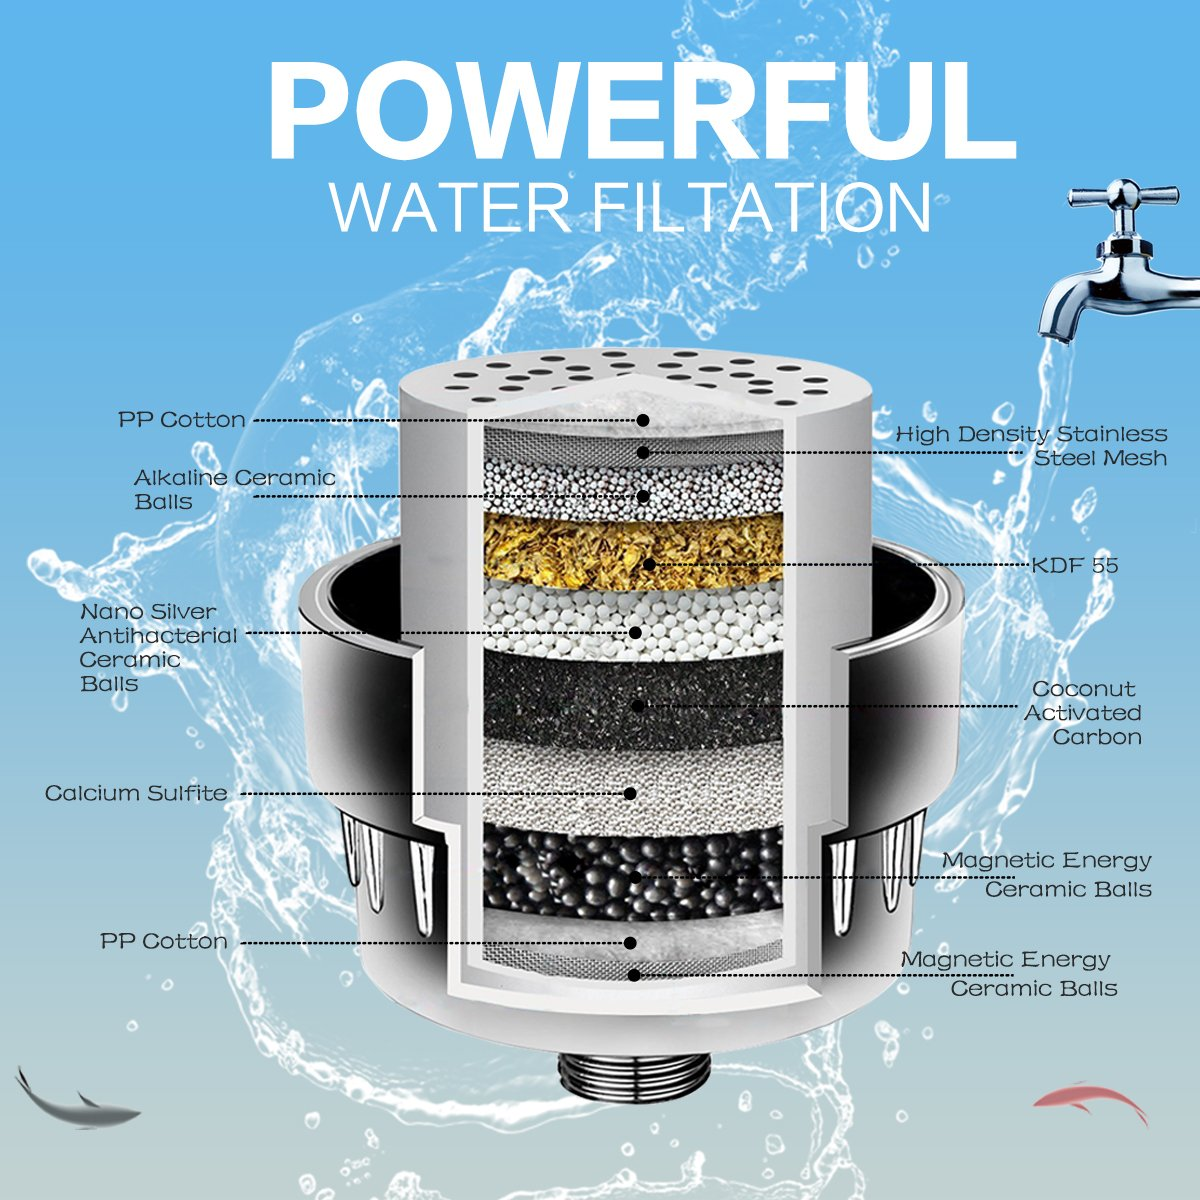 Budalga Universal Shower Water Filter With 2PCS Replaceable Multi-Stage Filter Cartridge Chrome Work With Any Shower Head by Budalga (Image #3)